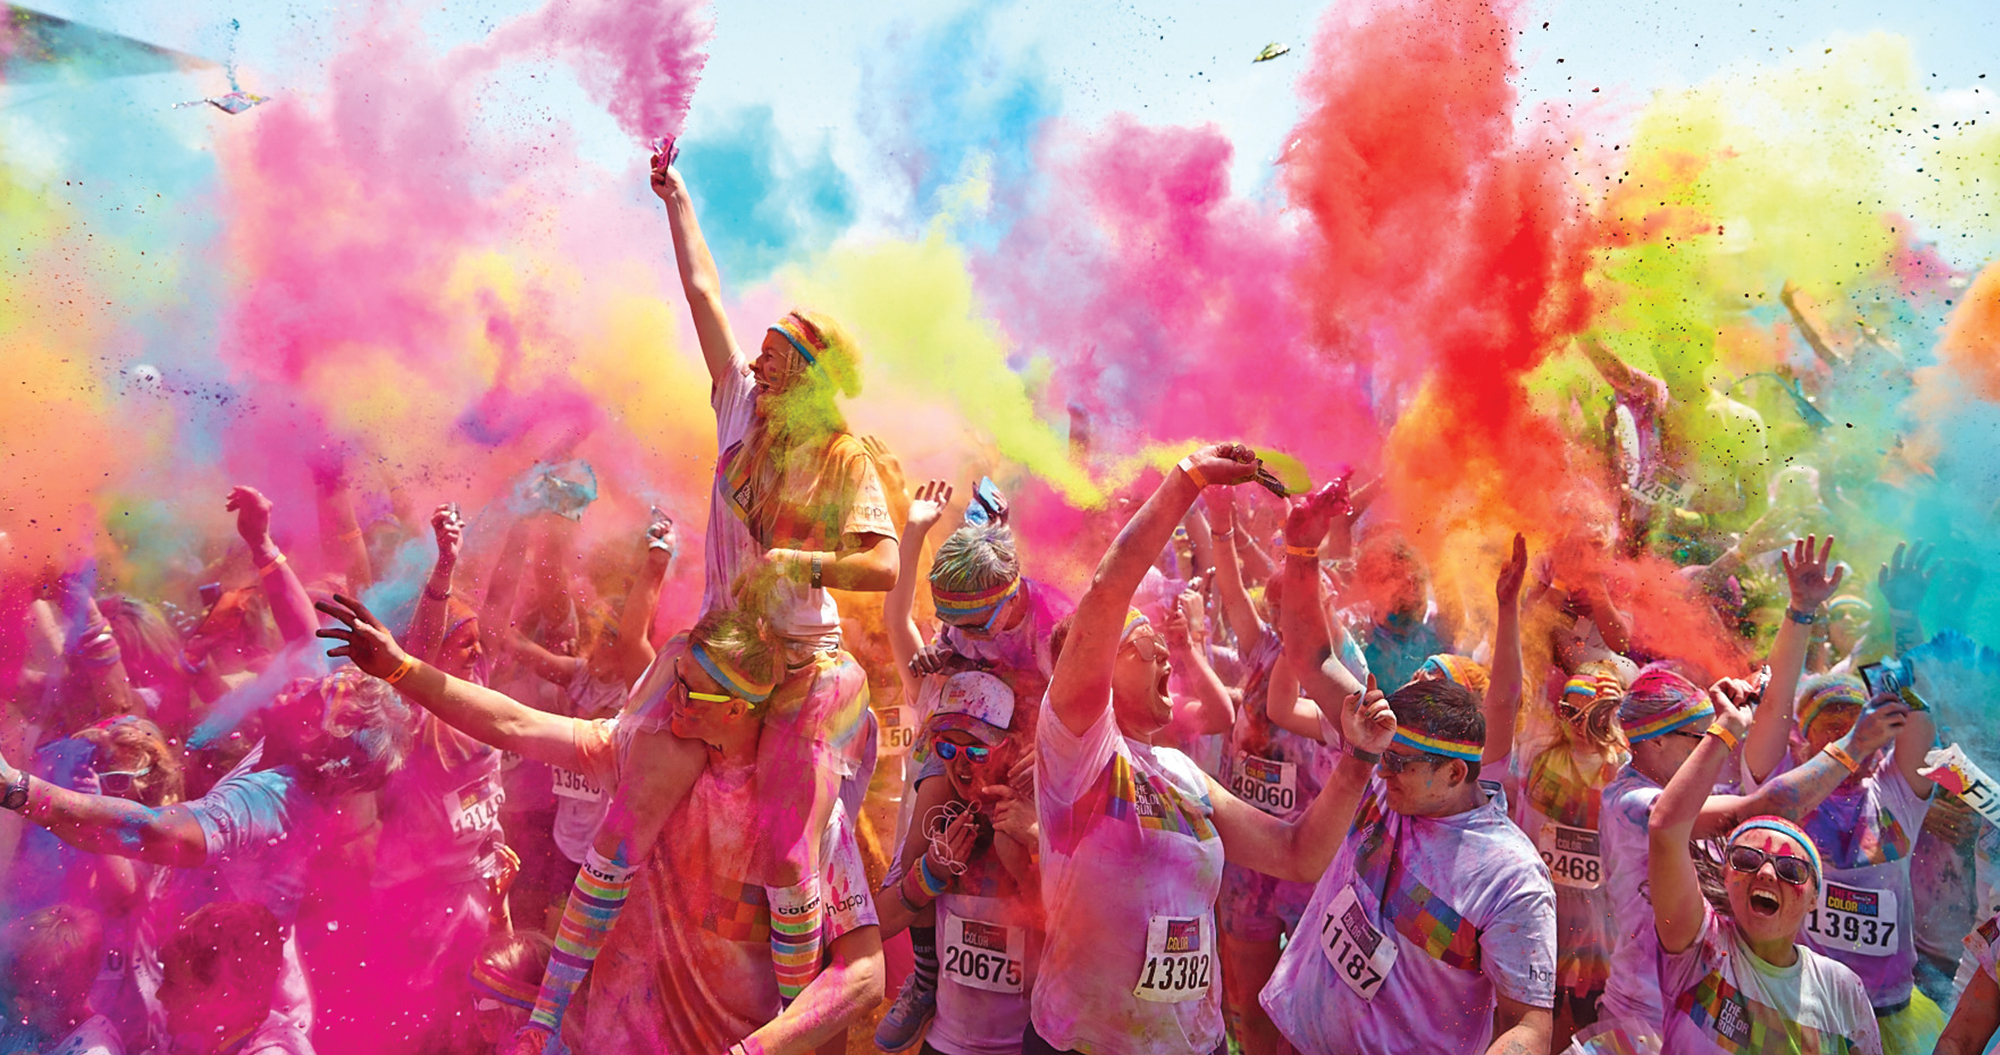 Color Run is a unique experience where every one can take part and enjoy the splash of colors. The event is focused more on people having fun with their friends and family and less on speed. The Color Run in Melbourne will be held at Sandown Racecourse on the 22nd of April